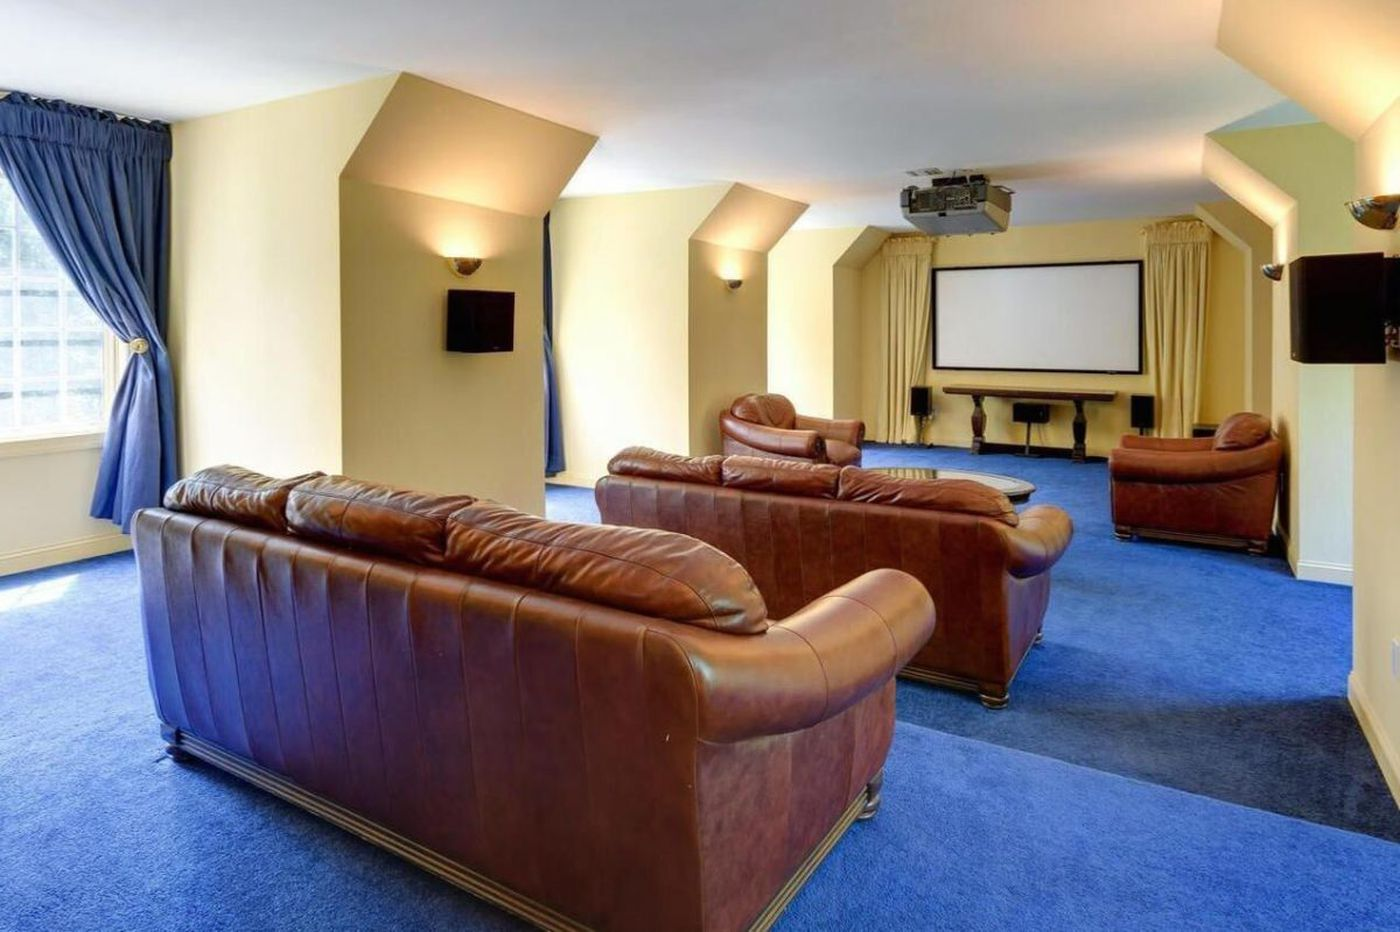 Million-dollar manses with home theaters fit for a Super Bowl